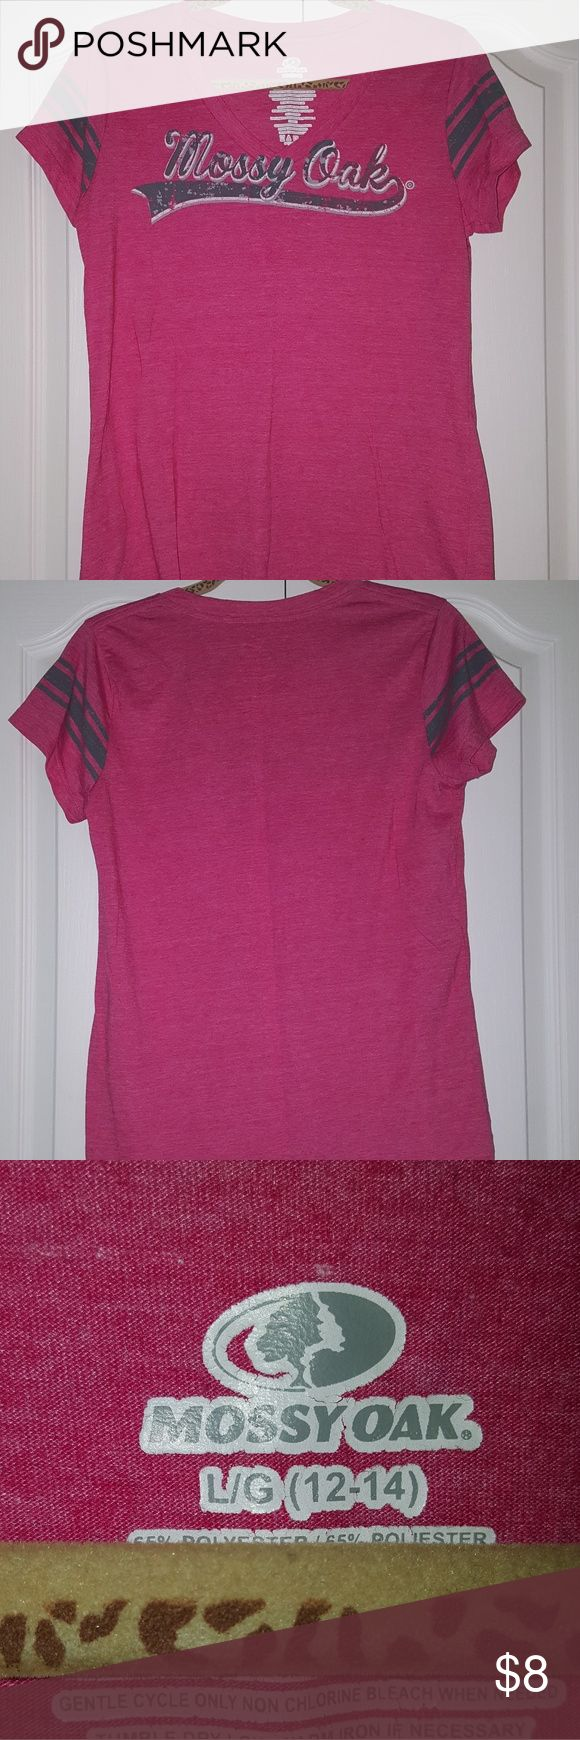 Mossy Oak pink v-neck t-shirt Good condition. Worn a couple times. Size: large. Color: pink, gray, white Mossy Oak Tops Tees - Short Sleeve